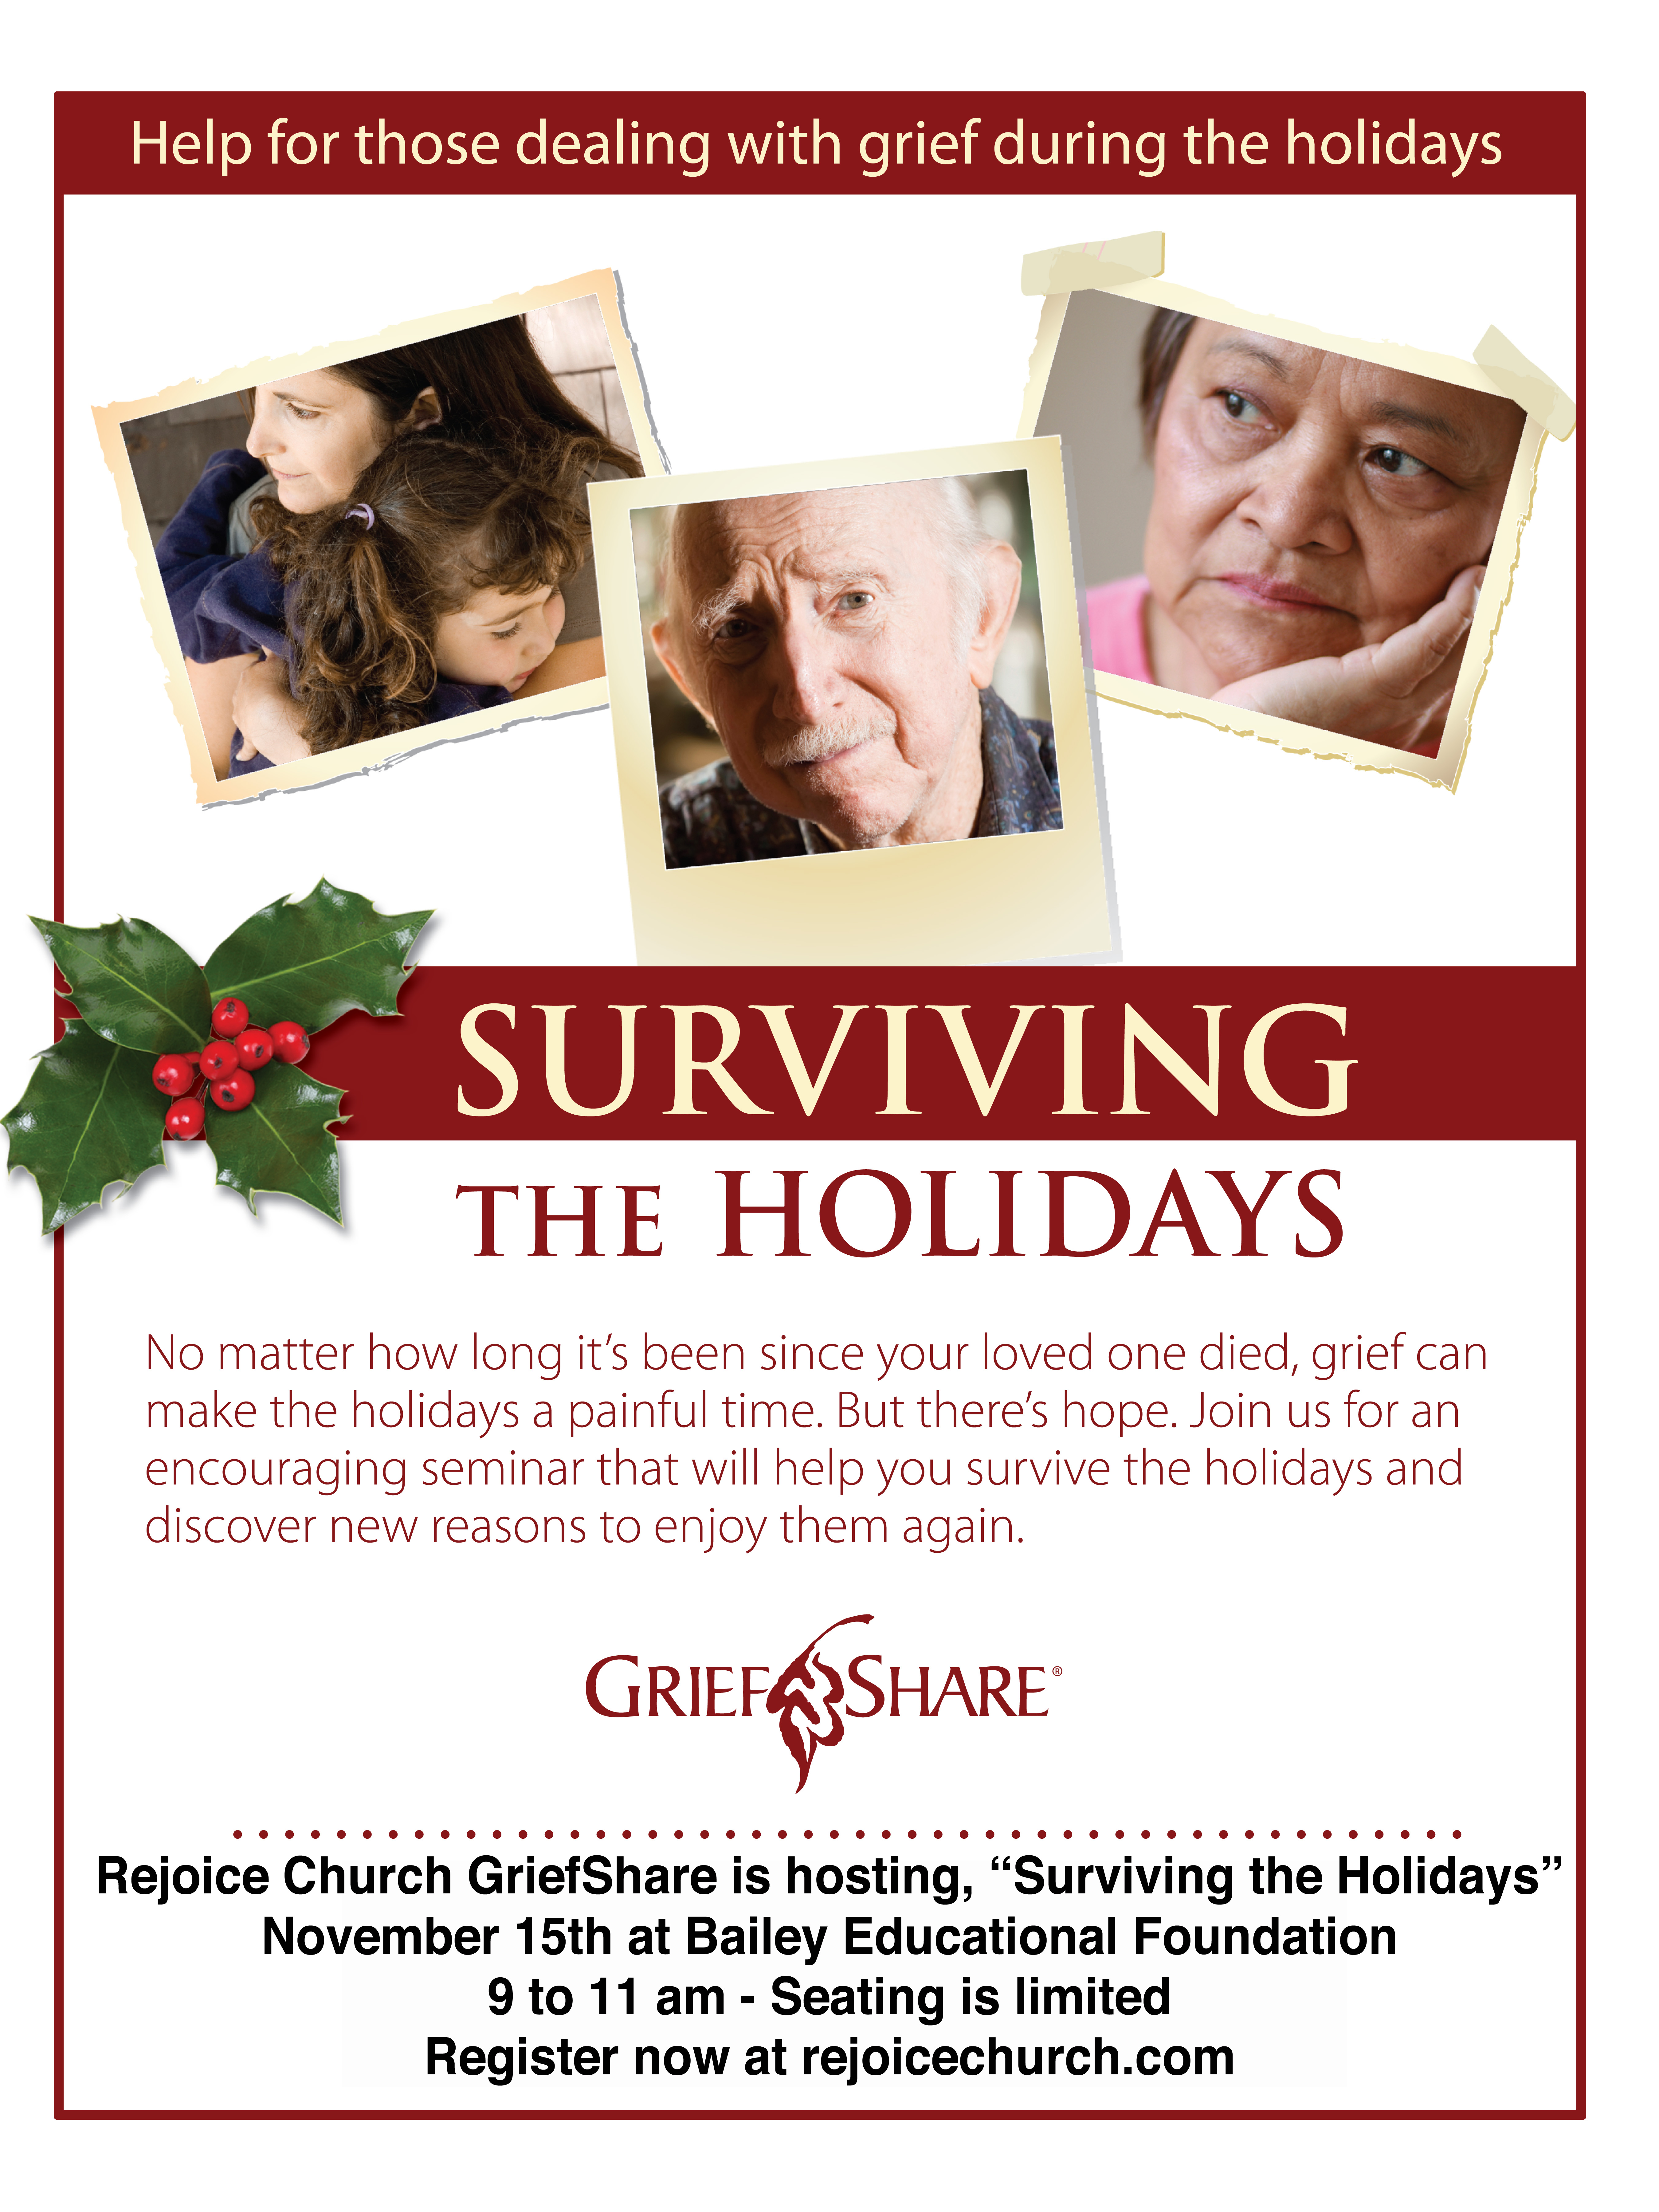 Quot Surviving The Holidays Quot Seminar Being Offered Through